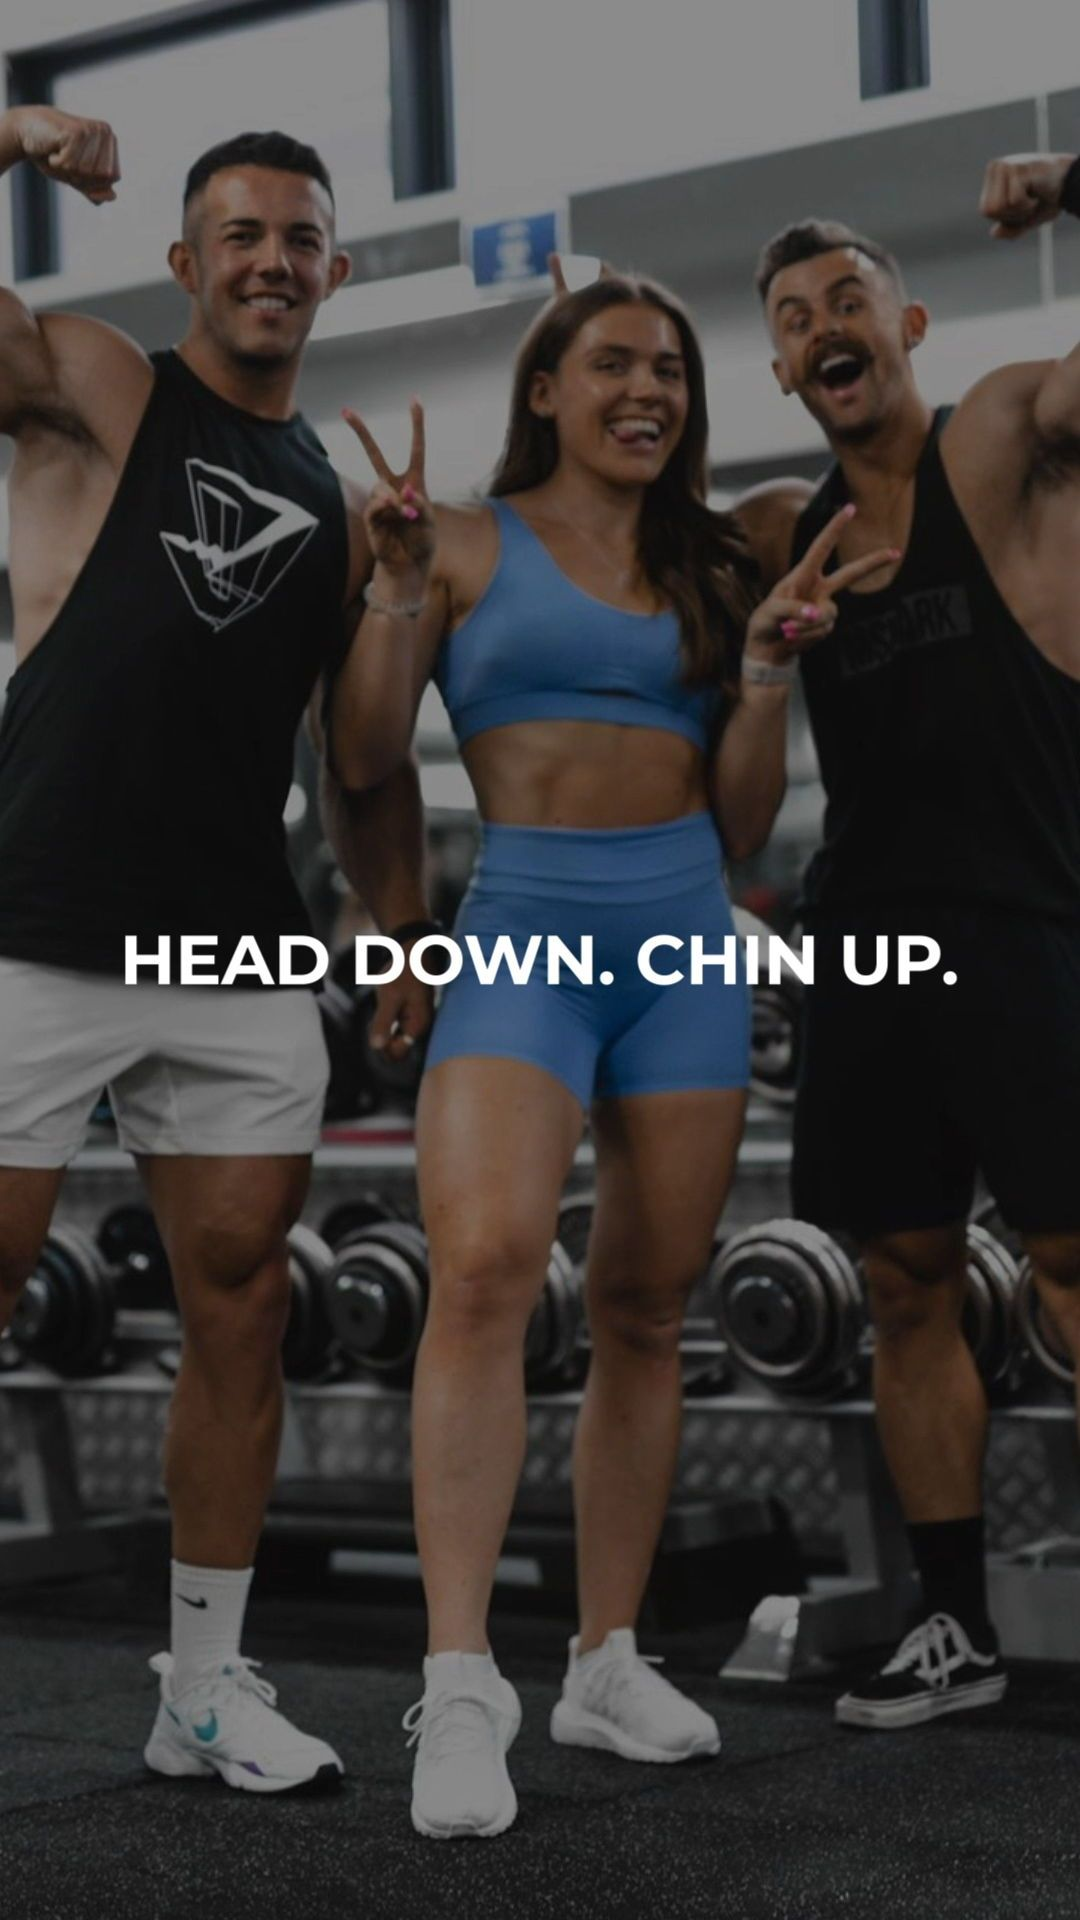 """""""Head down. Chin up."""" - Gymshark. Save this to your motivational board for a reminder! #Gymshark #Qu..."""